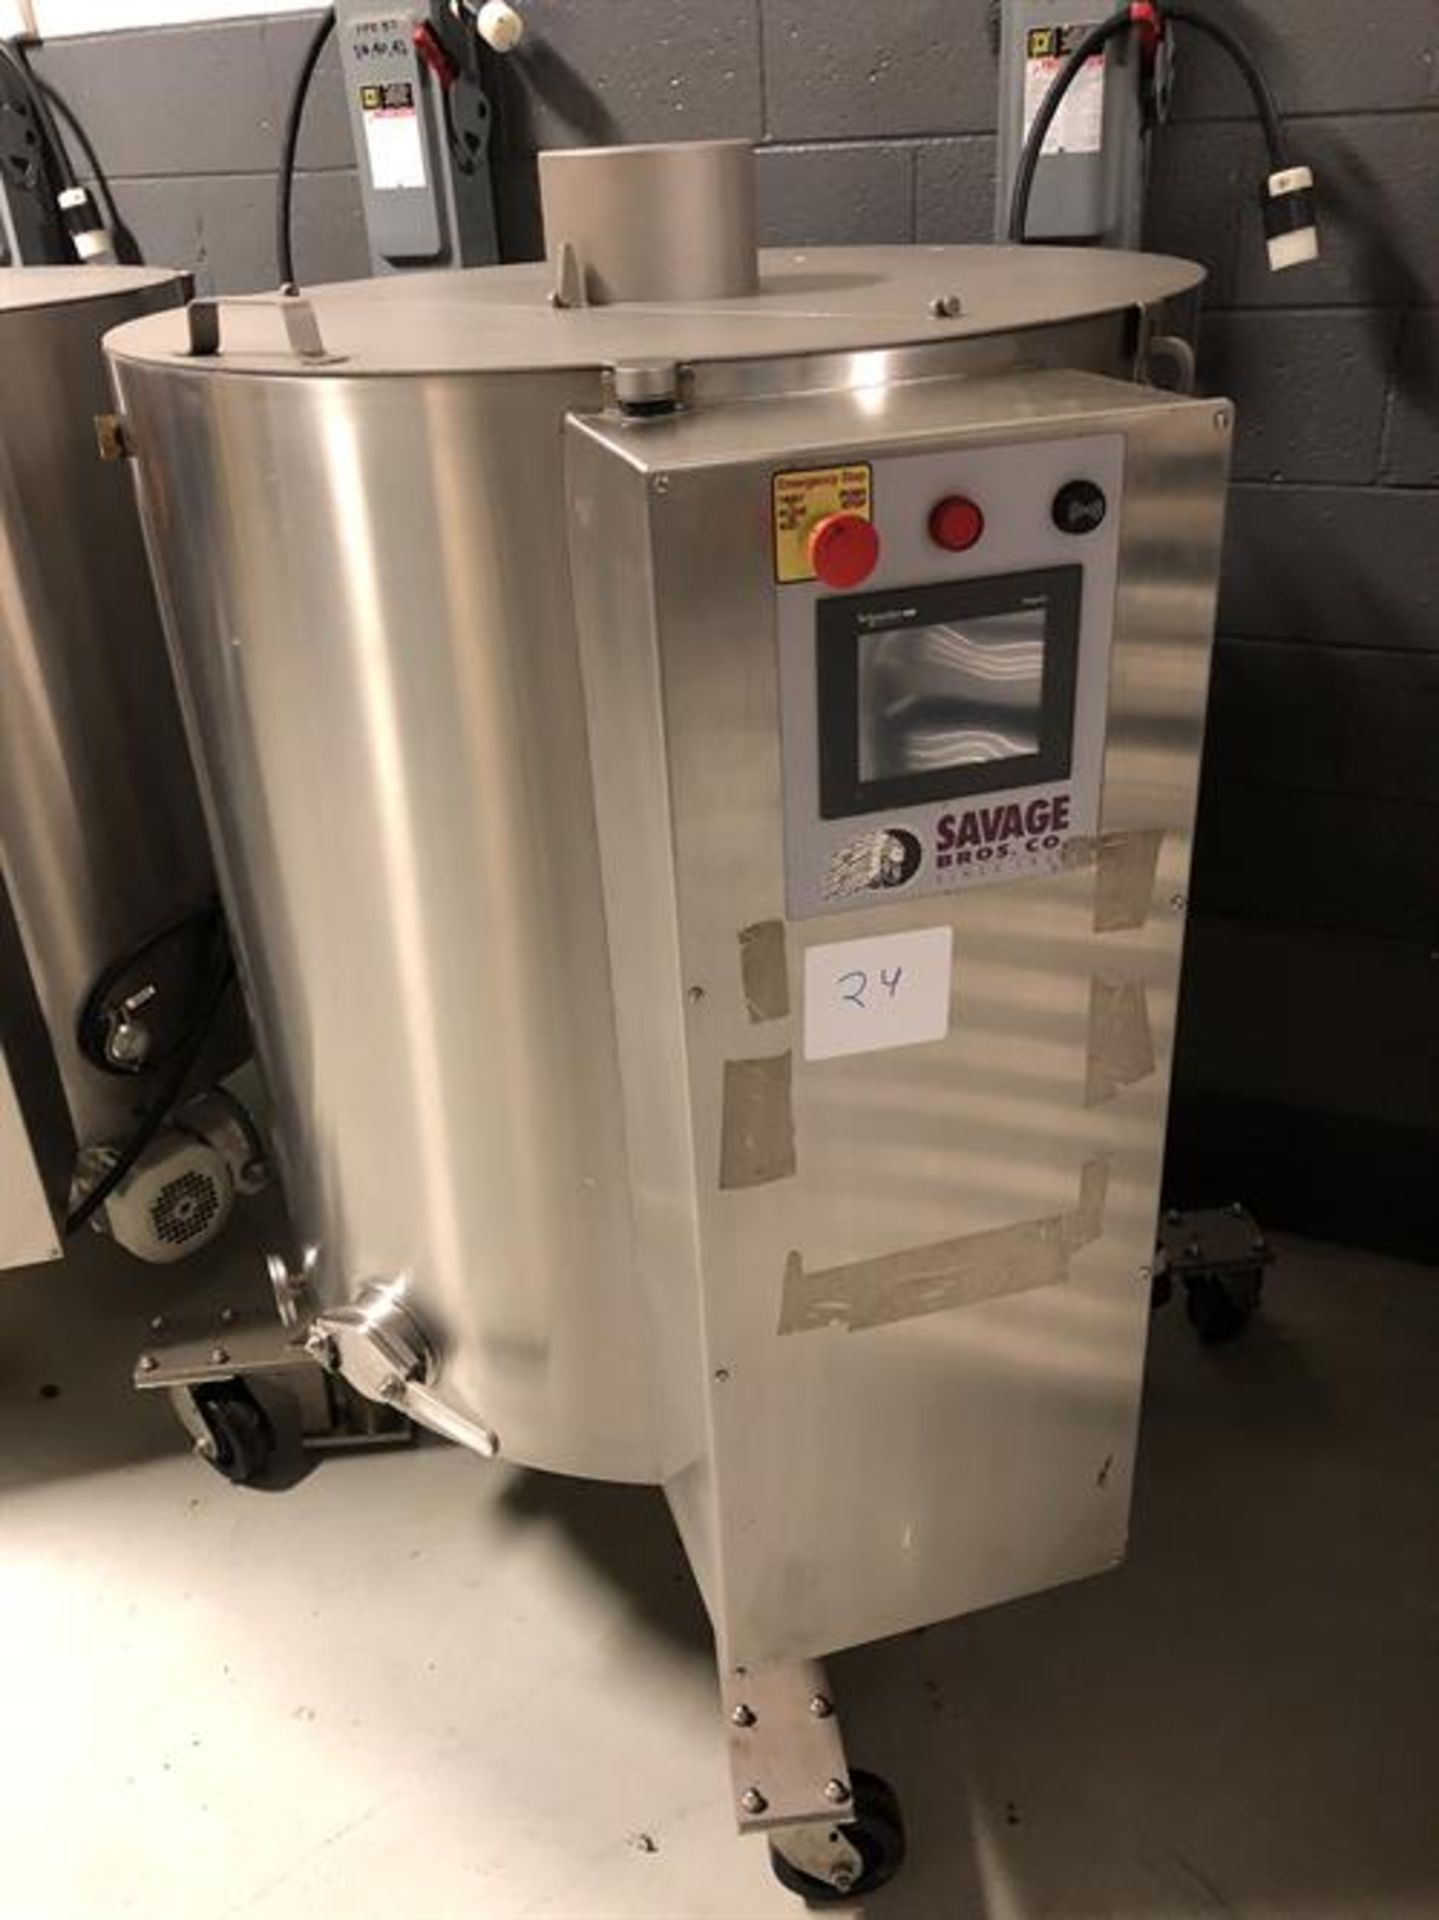 Savage 1250-lb Stainless Steel Chocolate Melter - model 0974-40, with PLC touchscreen controls, - - Image 4 of 7